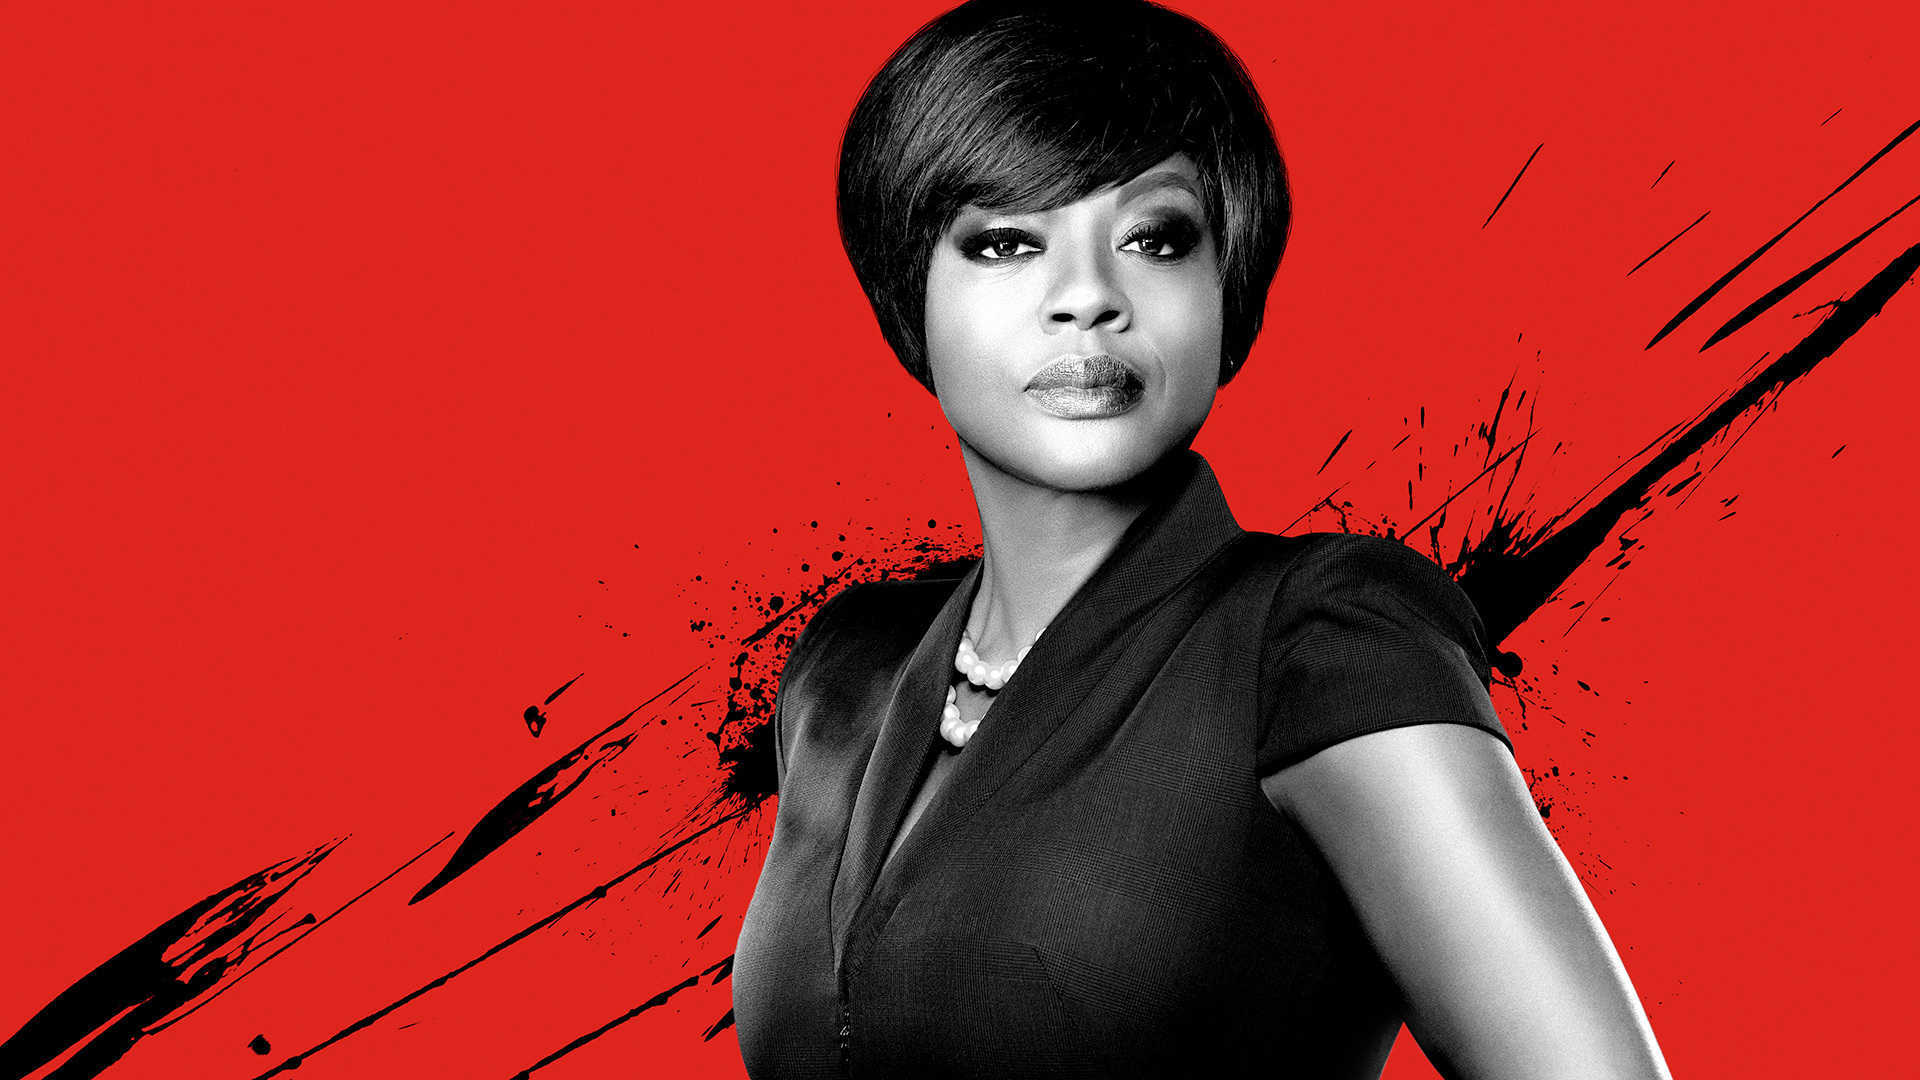 Wallpaper How To Get Away With Murder 02 HD Wallpaper Upload at 1920x1080